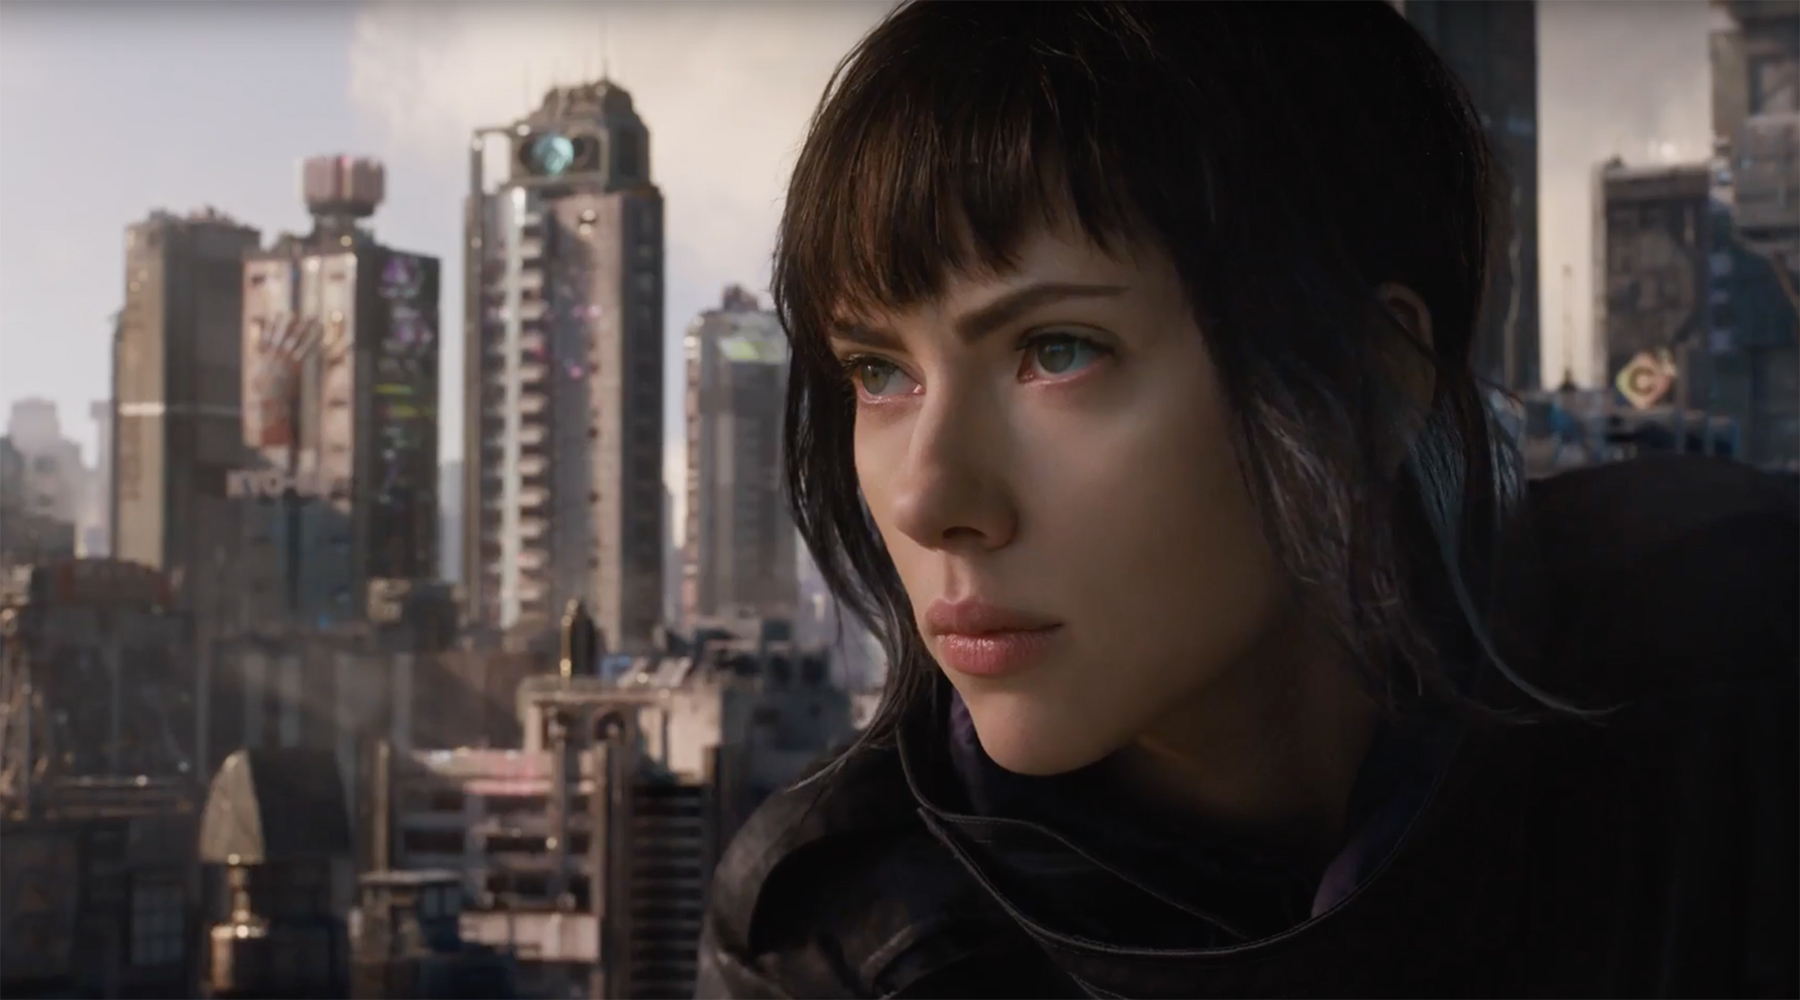 New Ghost In The Shell Trailer Shows Cyborg Scarlett Johansson Wreaking Havoc